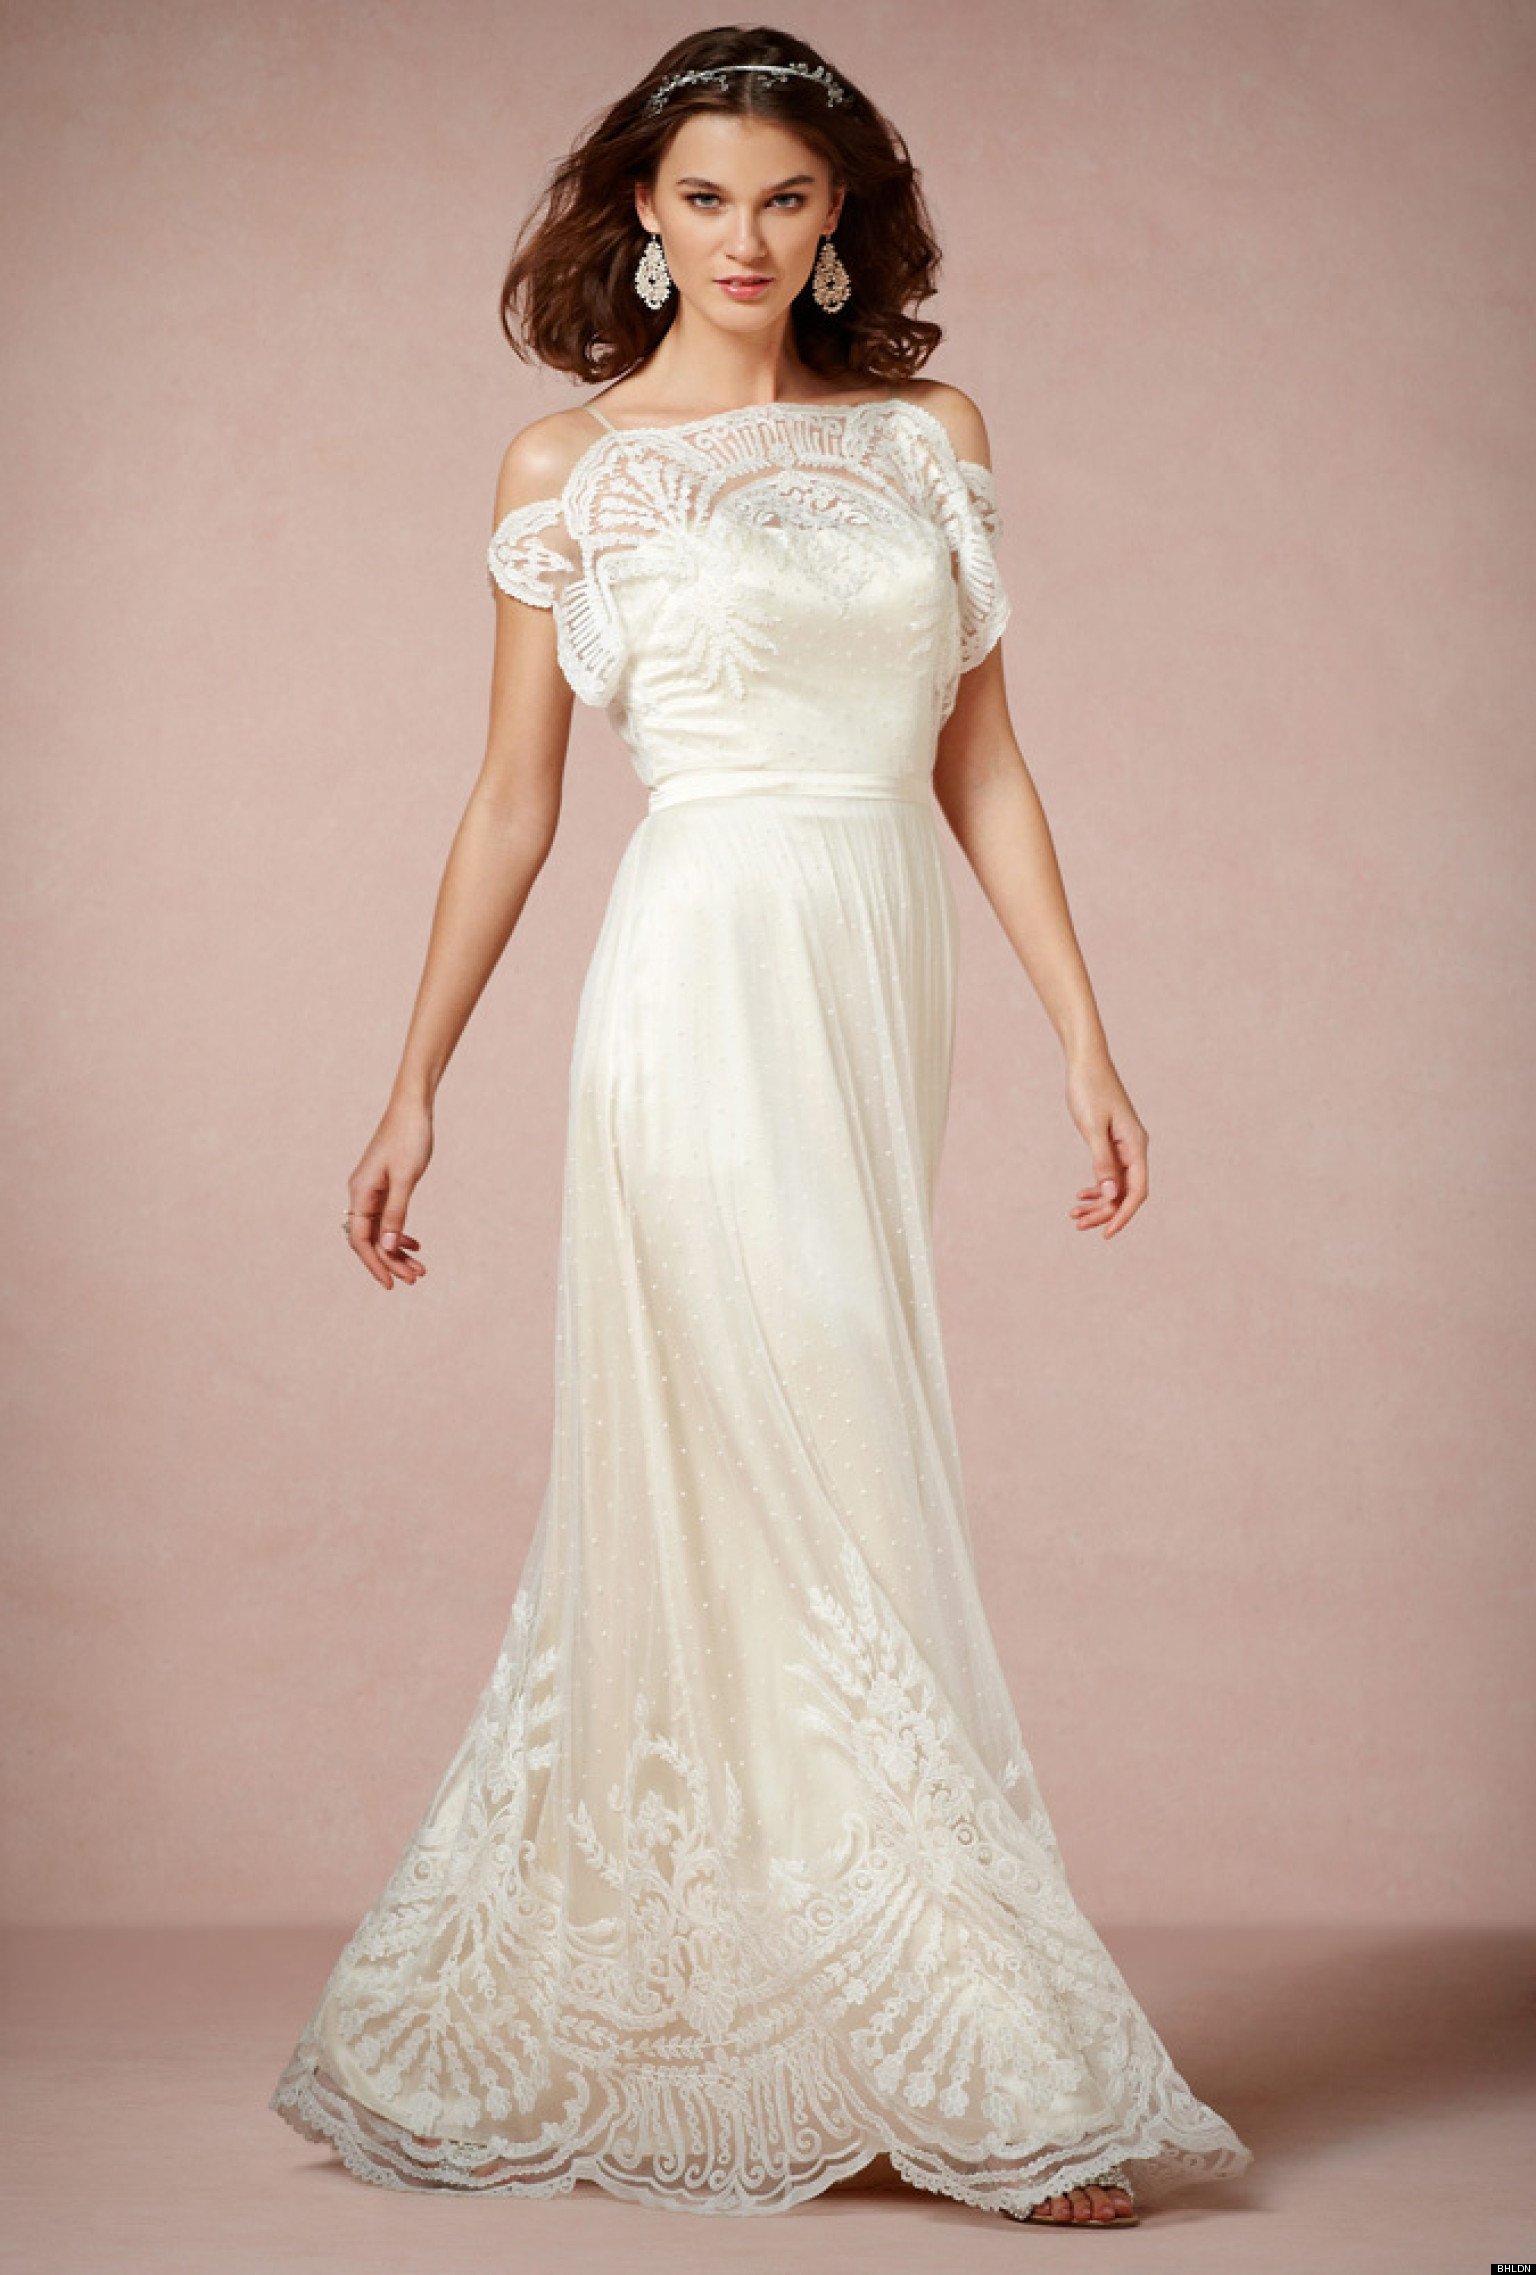 20 gatsby worthy wedding dresses huffpost for The great gatsby wedding dresses